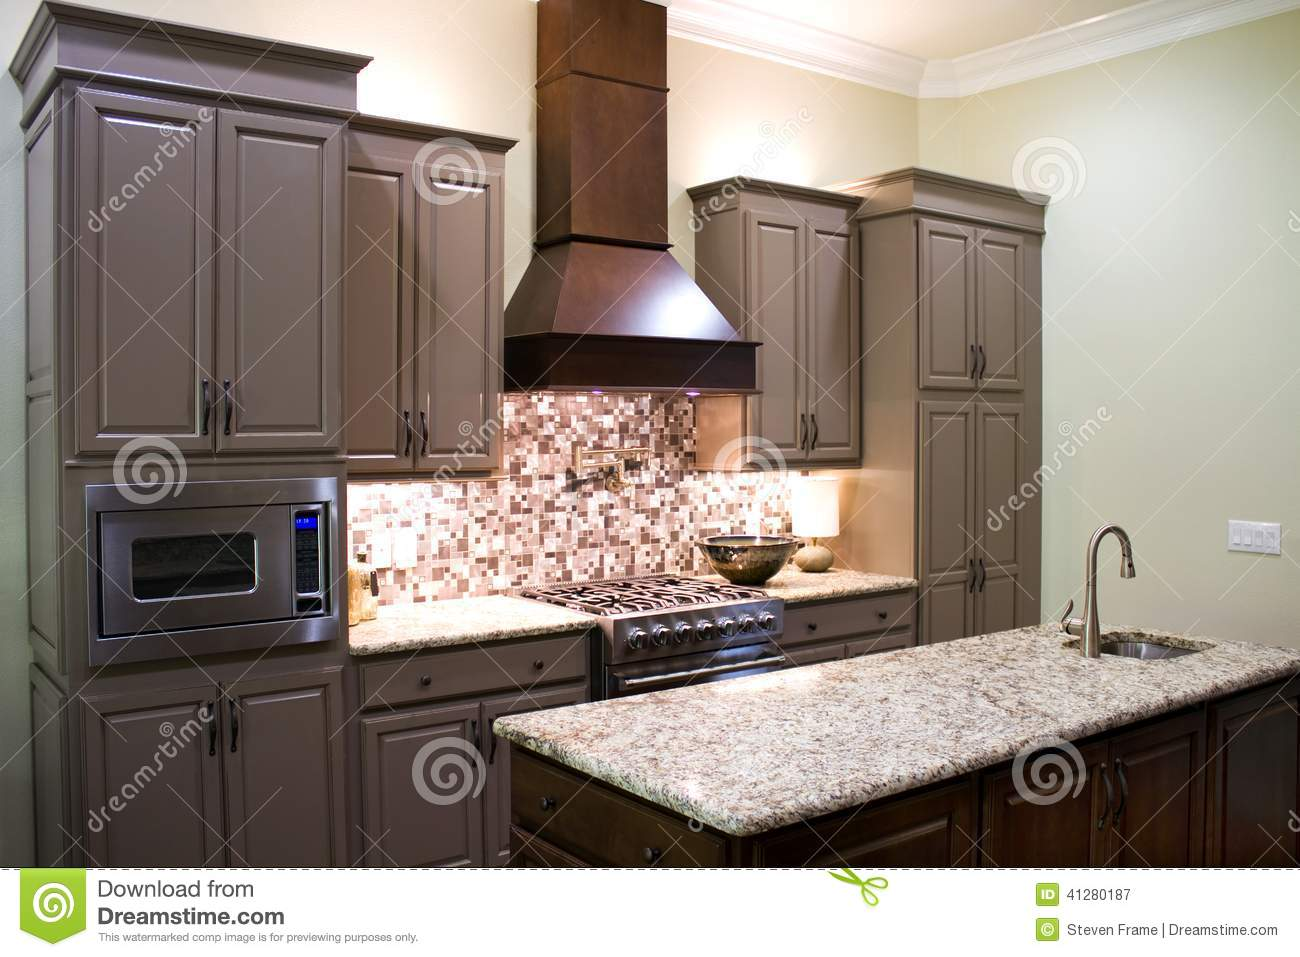 New modern kitchen stock photo image 41280187 for Marvellous modern luxury kitchen with granite countertop